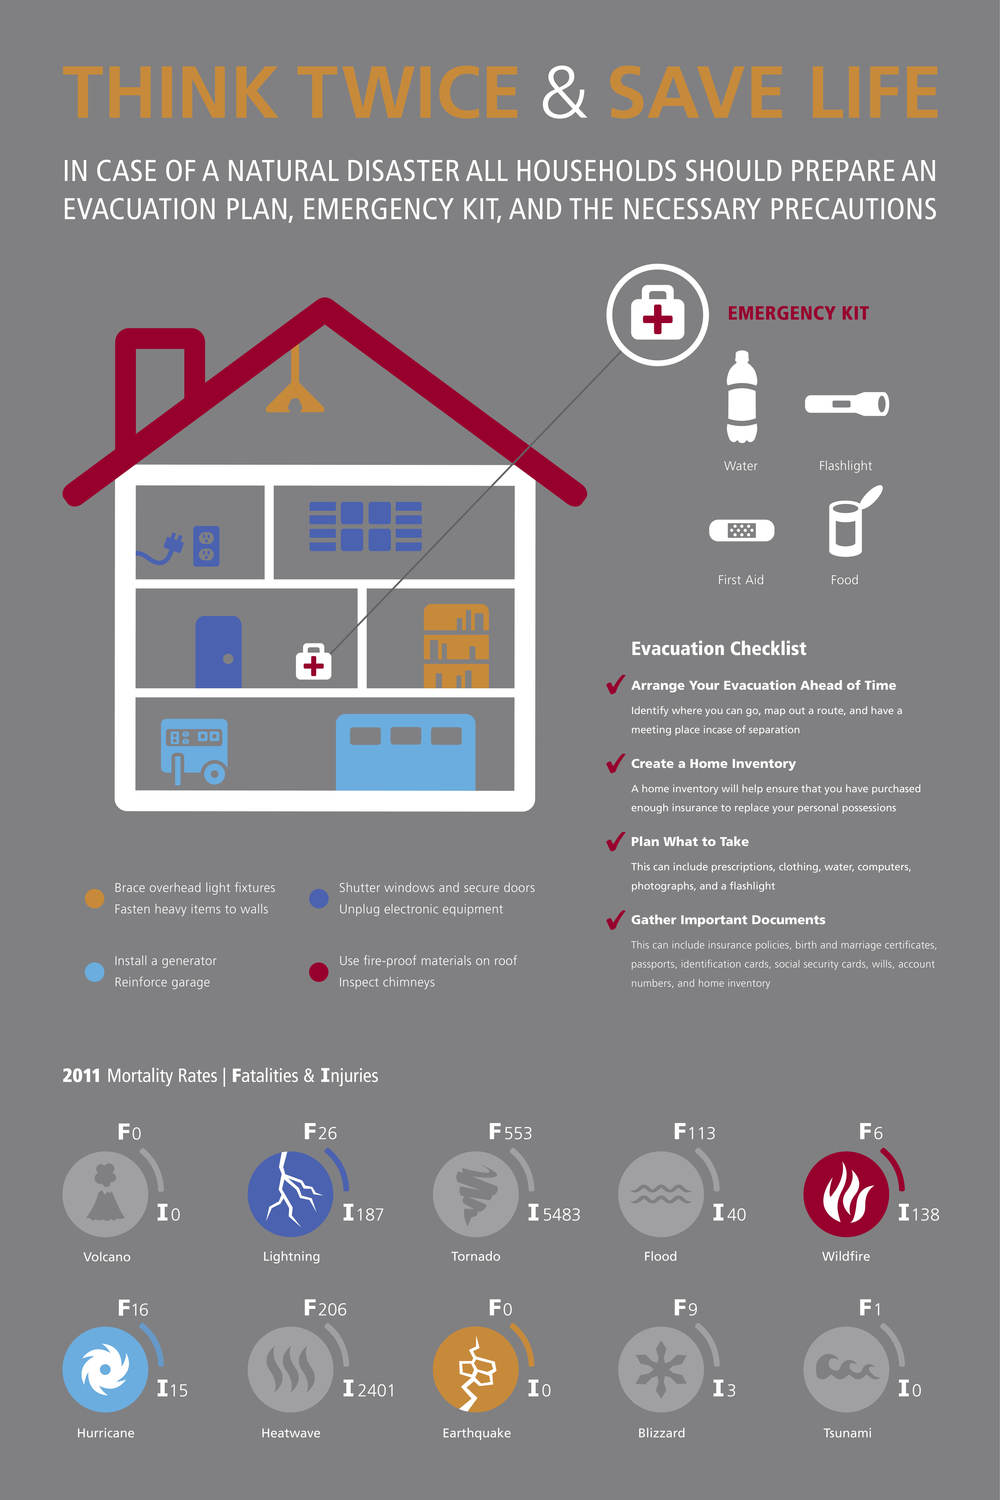 The poster depicts an evacuation checklist and the mortality rates of the 10 disasters of 2011. The house infographic shows all the parts of a house where a person can make preparations to protect themselves from hurricanes, lightning, earthquakes, and wildfires; all color coded according to disaster. A first aid kit icon further shows what should be held in an emergency kit.